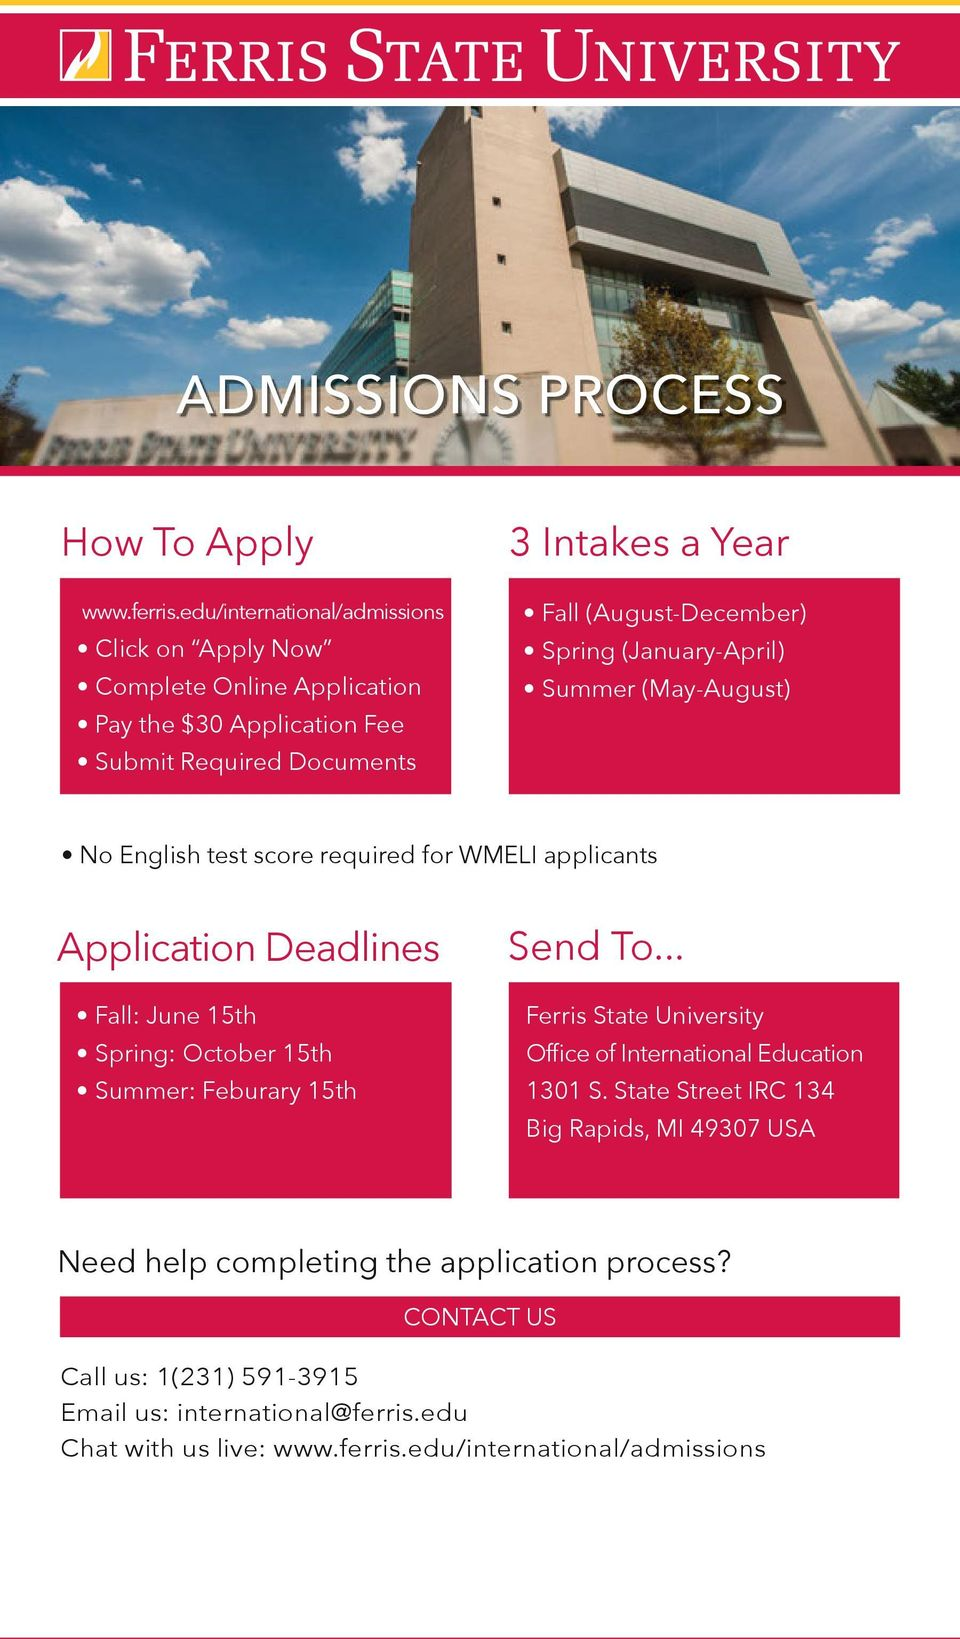 Spring (January-April) Summer (May-August) No English test score required for WMELI applicants Application Deadlines Fall: June 15th Spring: October 15th Summer: Feburary